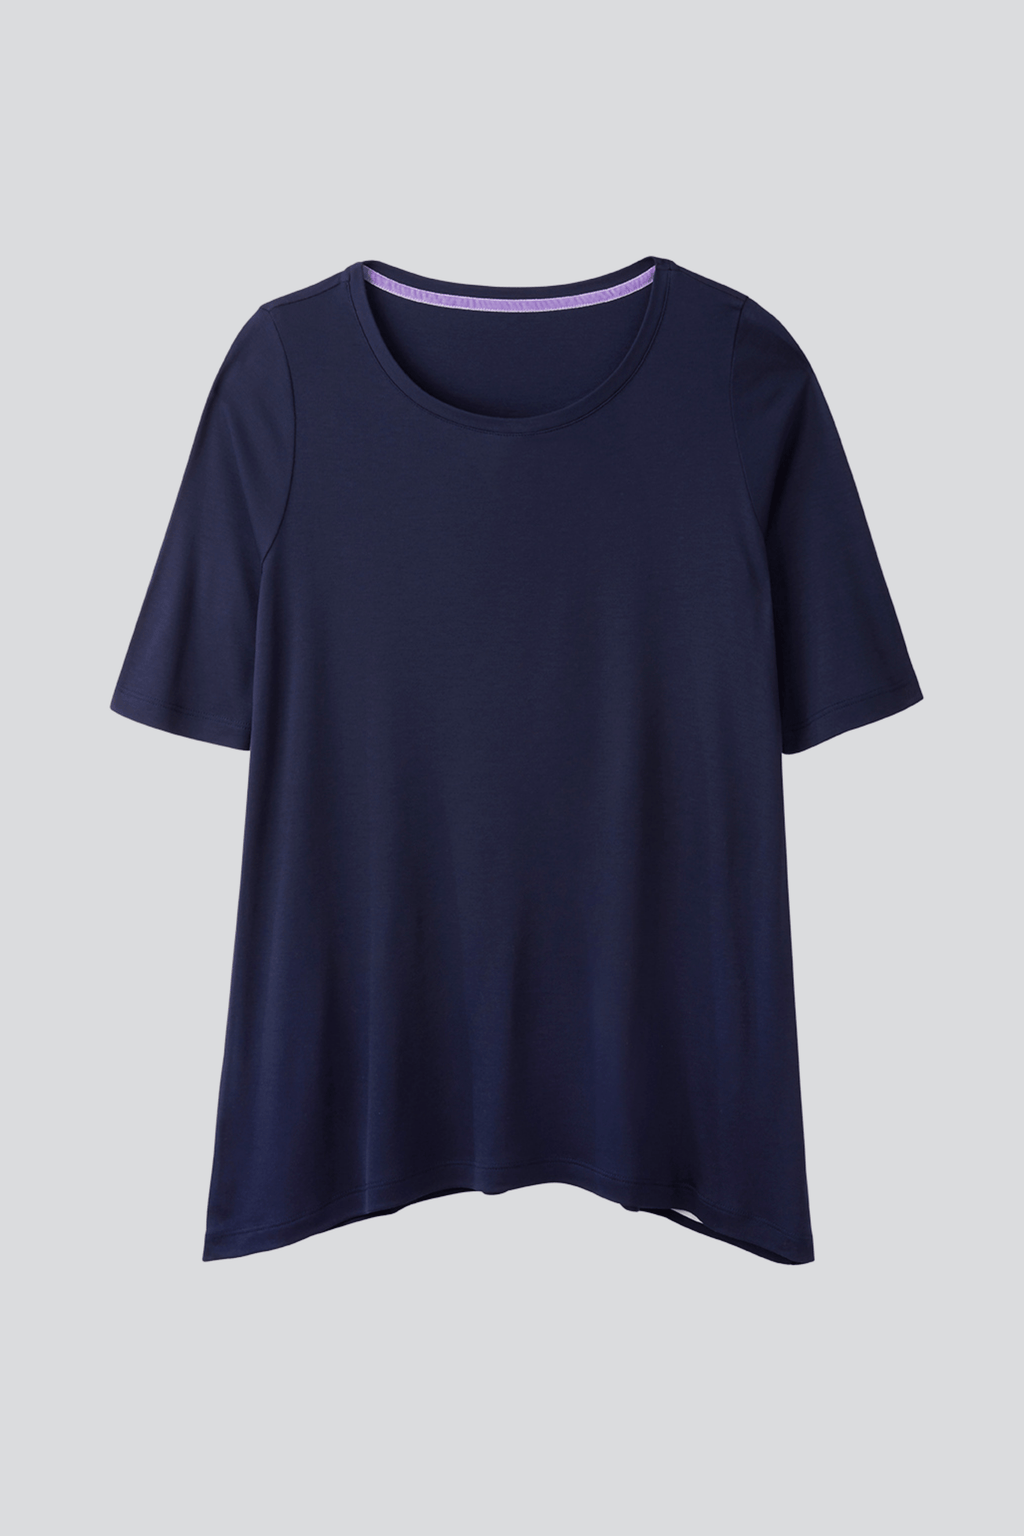 Navy Mid Sleeve A-line Micro Modal T-shirt | Flattering loose fit half sleeve womens T-shirt | Lavender Hill Clothing